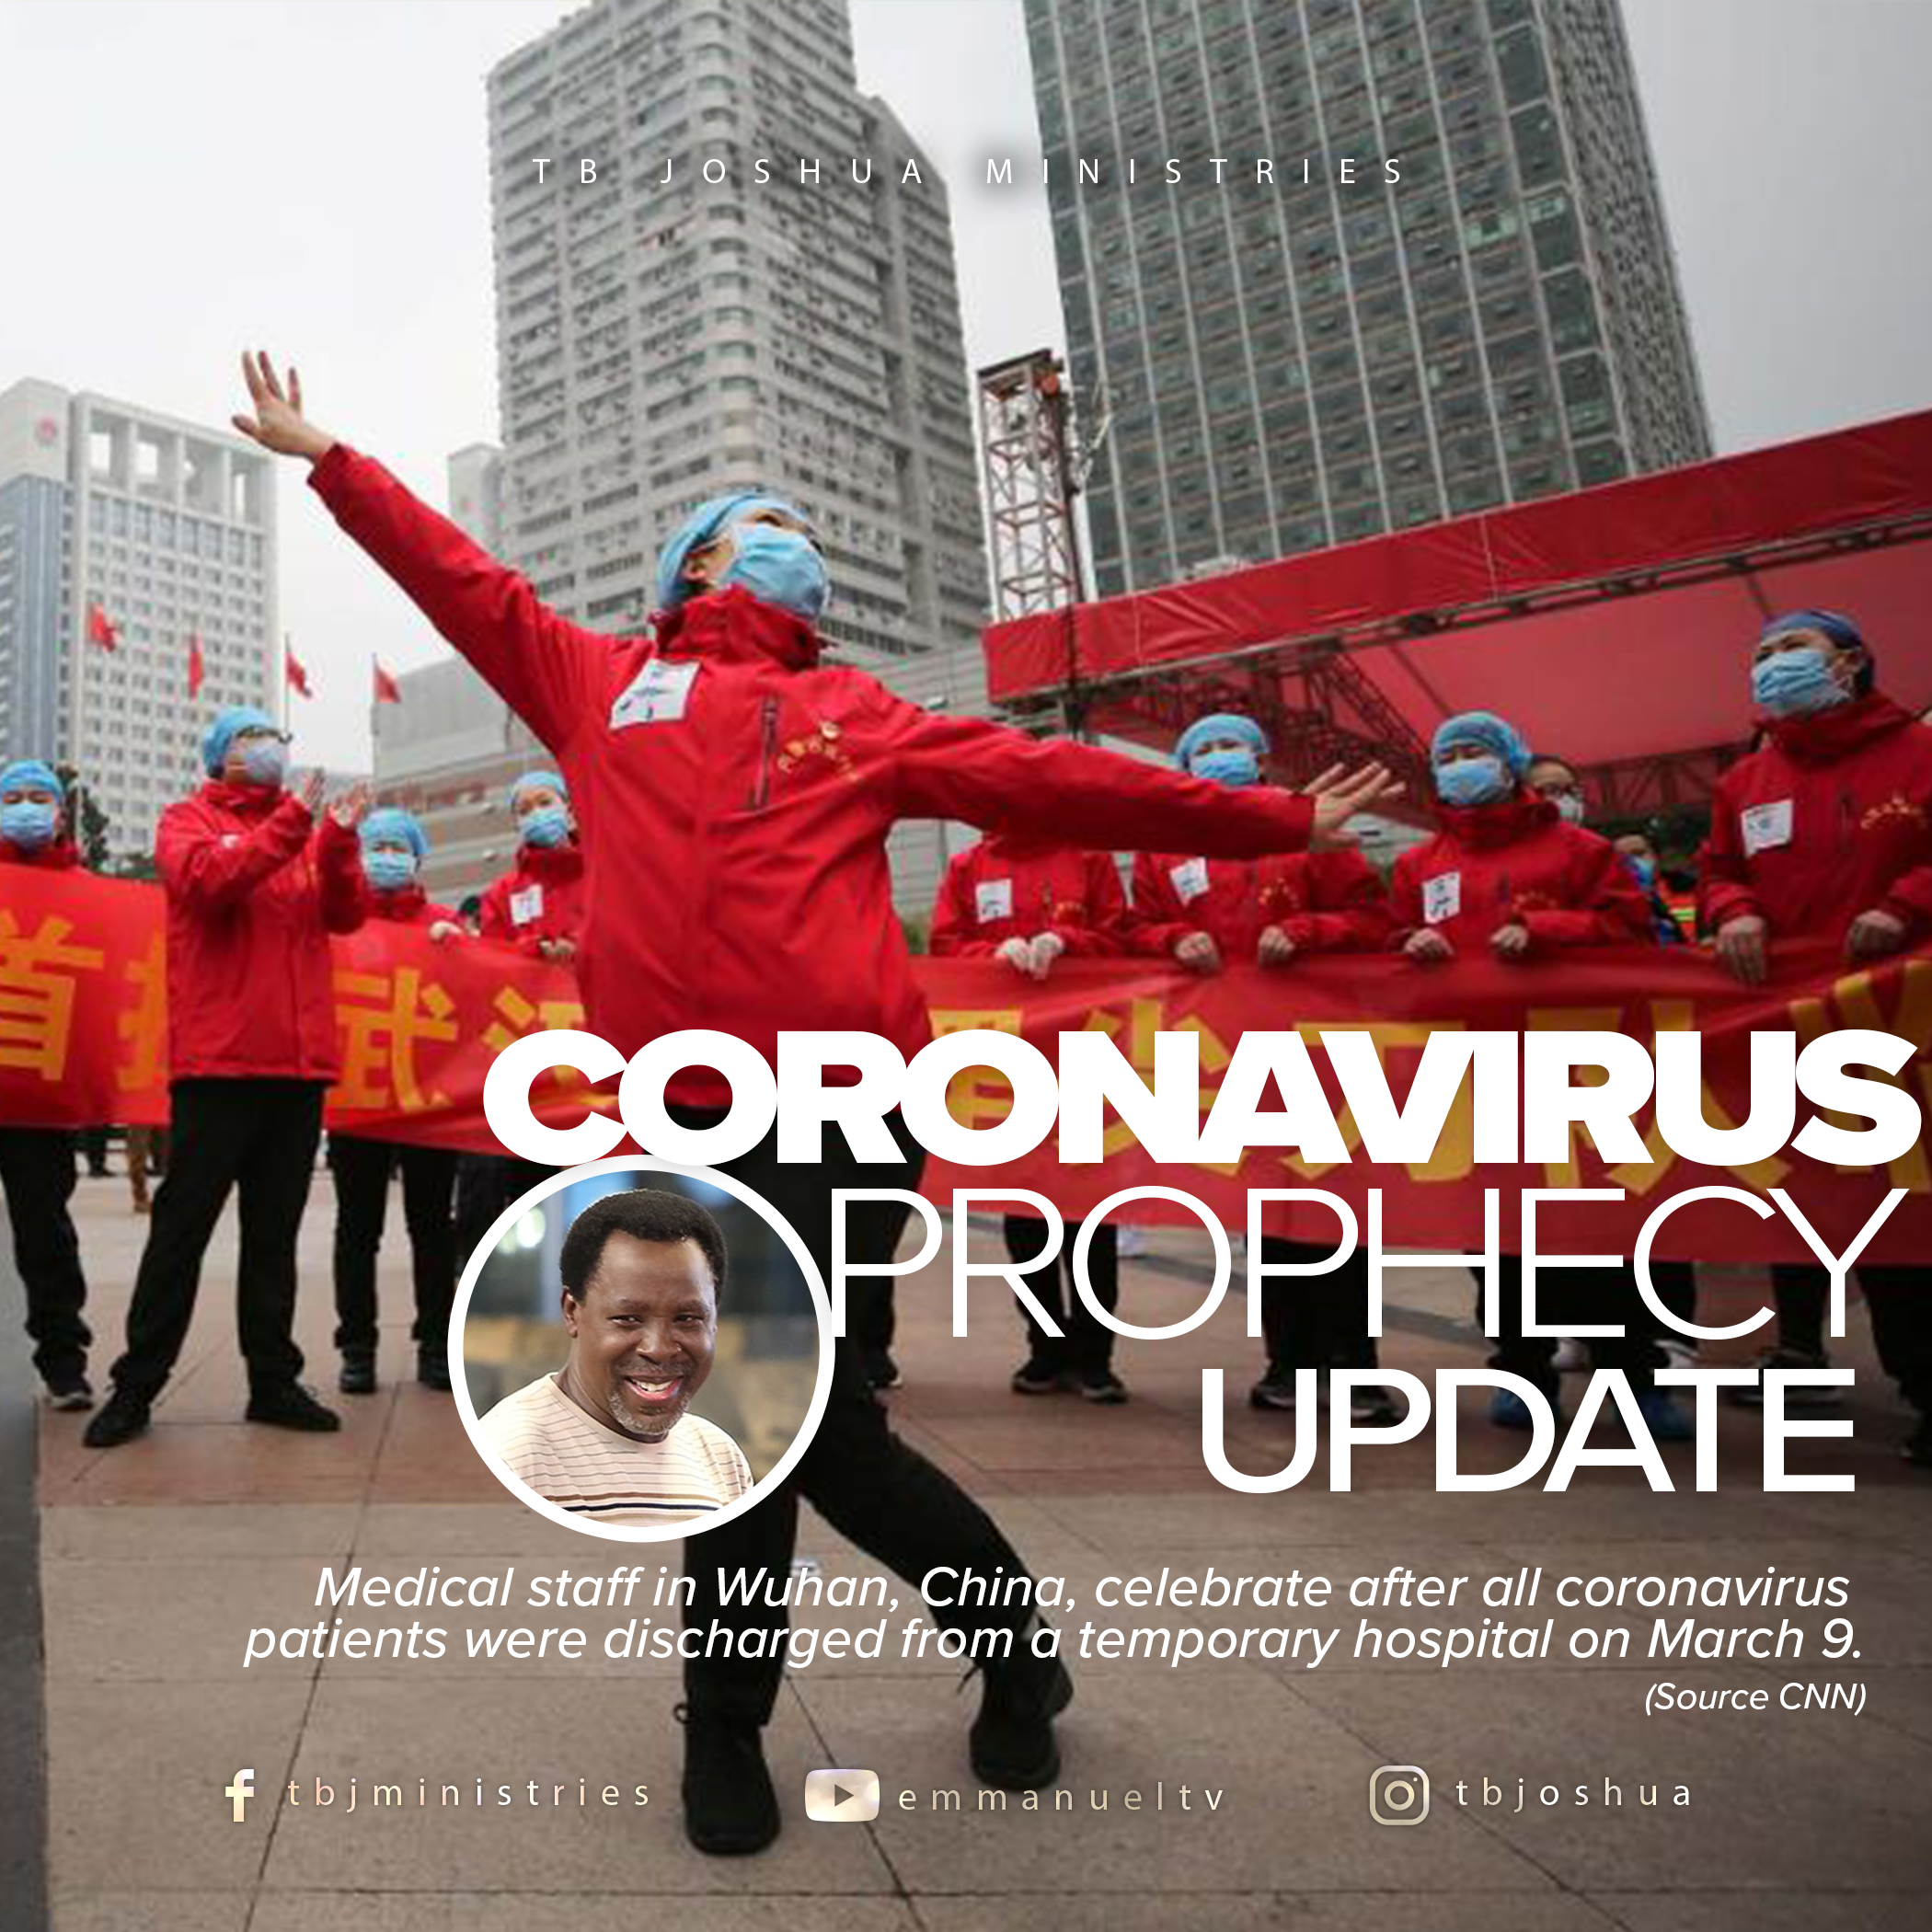 CORONAVIRUS PROPHECY UPDATE: